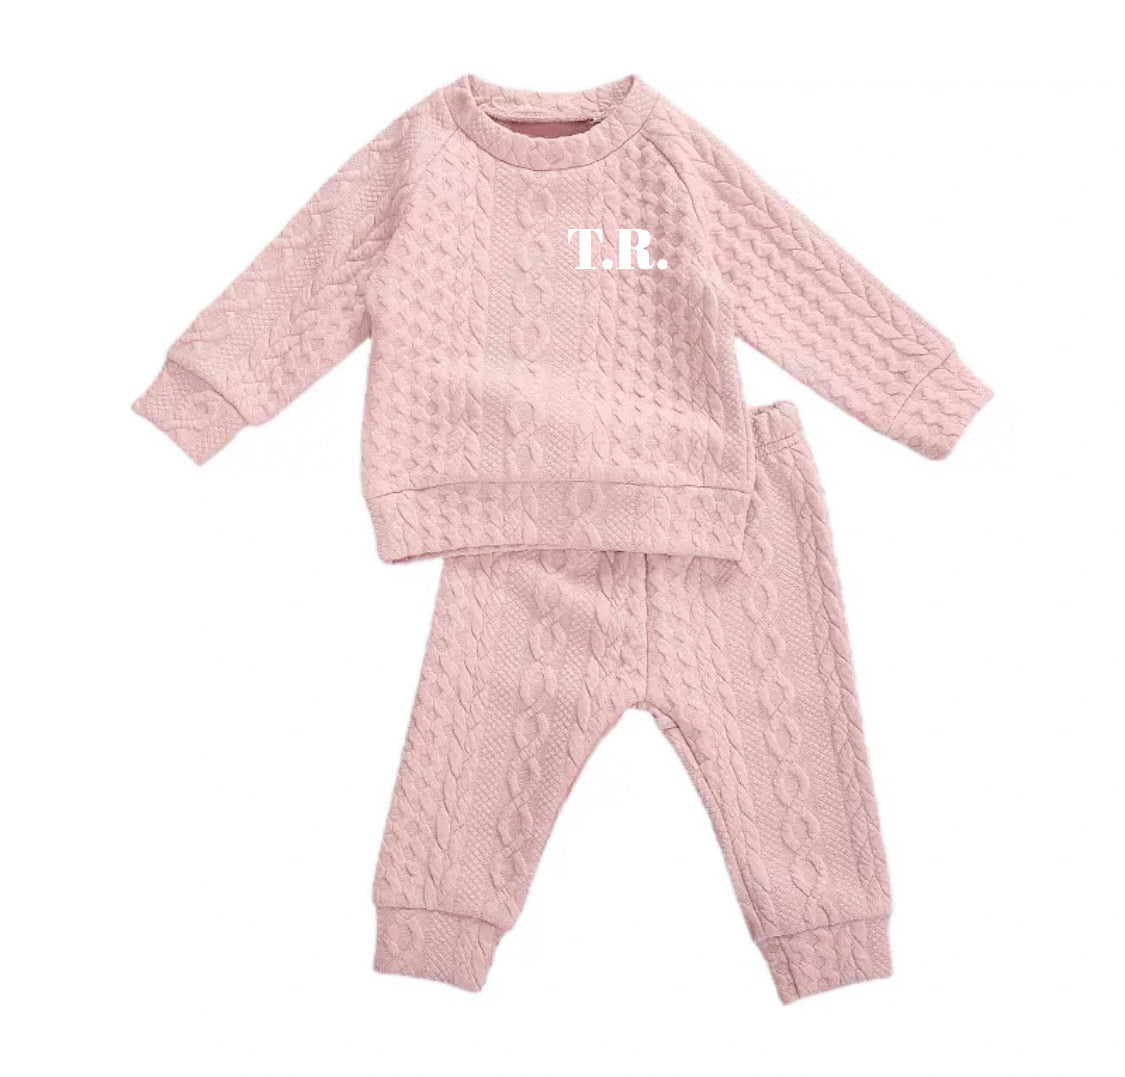 Dusky pink cable print jersey personalised lounge suit - (up to 18 months)